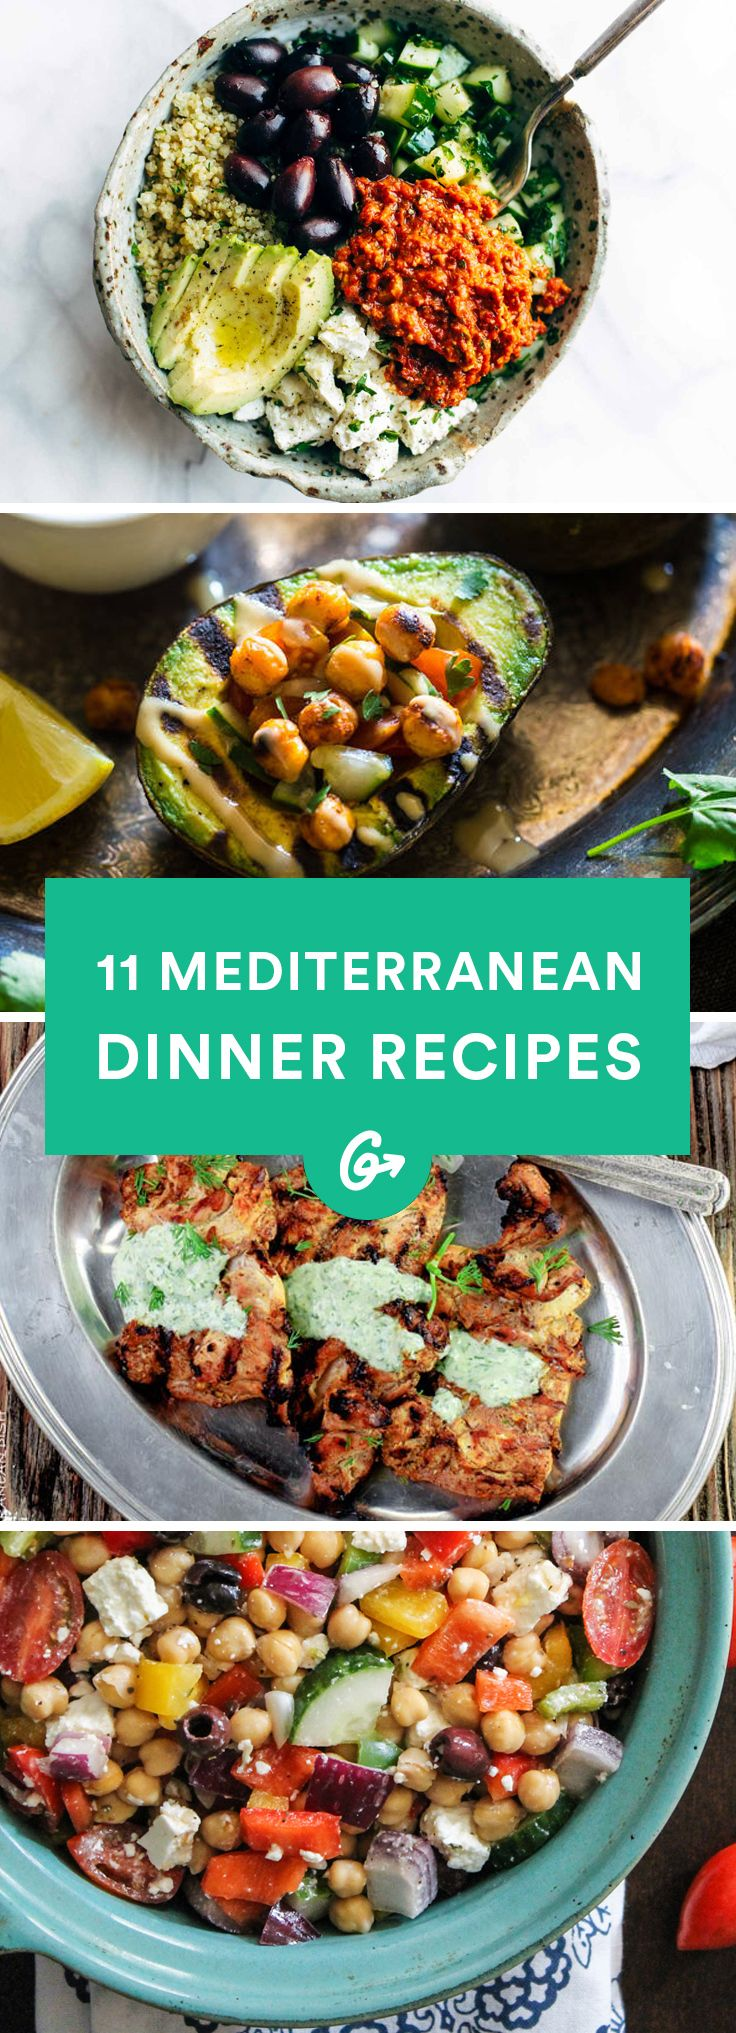 Health benefits aside, you should definitely try these flavorful dinner recipes. #mediterranean #dinner #recipes http://greatist.com/eat/dinner-recipes-healthy-mediterranean-recipes